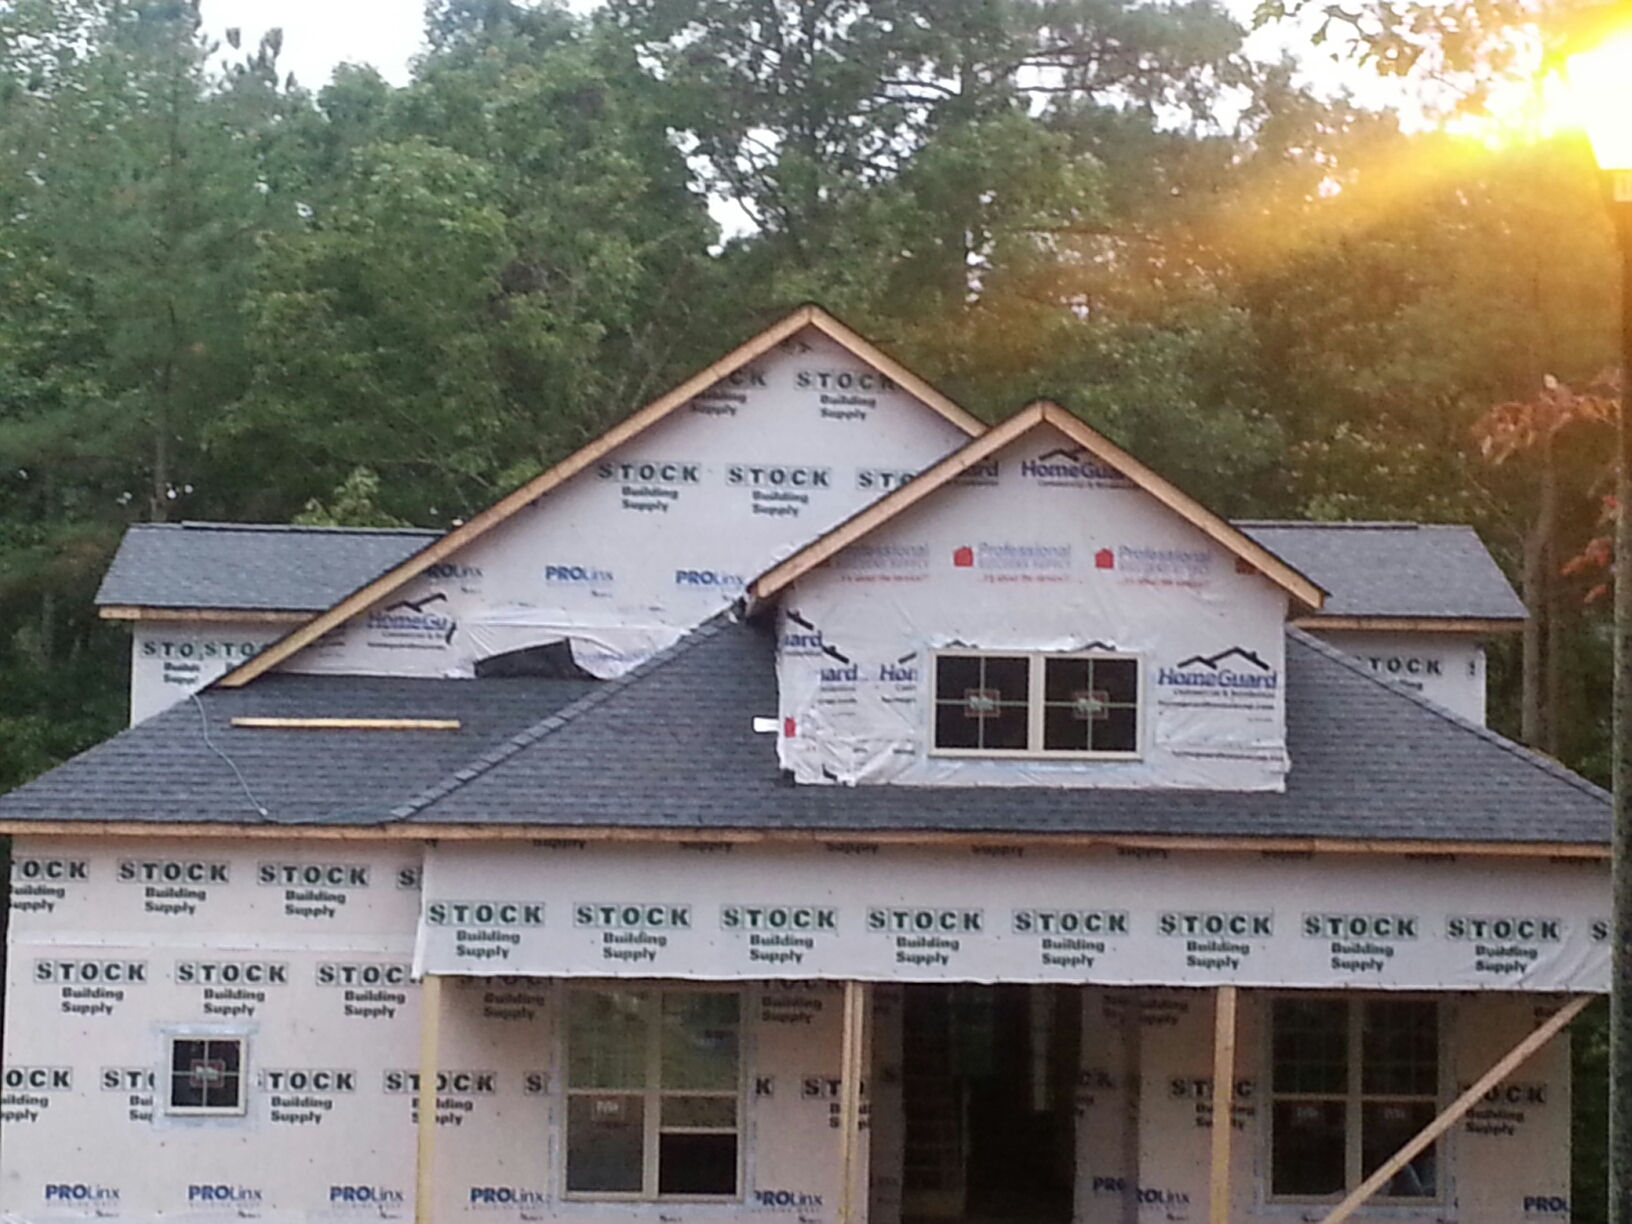 Zebulon, NC - Another New roof by Spilman,inc. Fabulous roofing crew!!! We can install a new roof for you too! Just email or call....chris@spilmaninc.com 919.510.0280. We do it right, the first time, for Less.